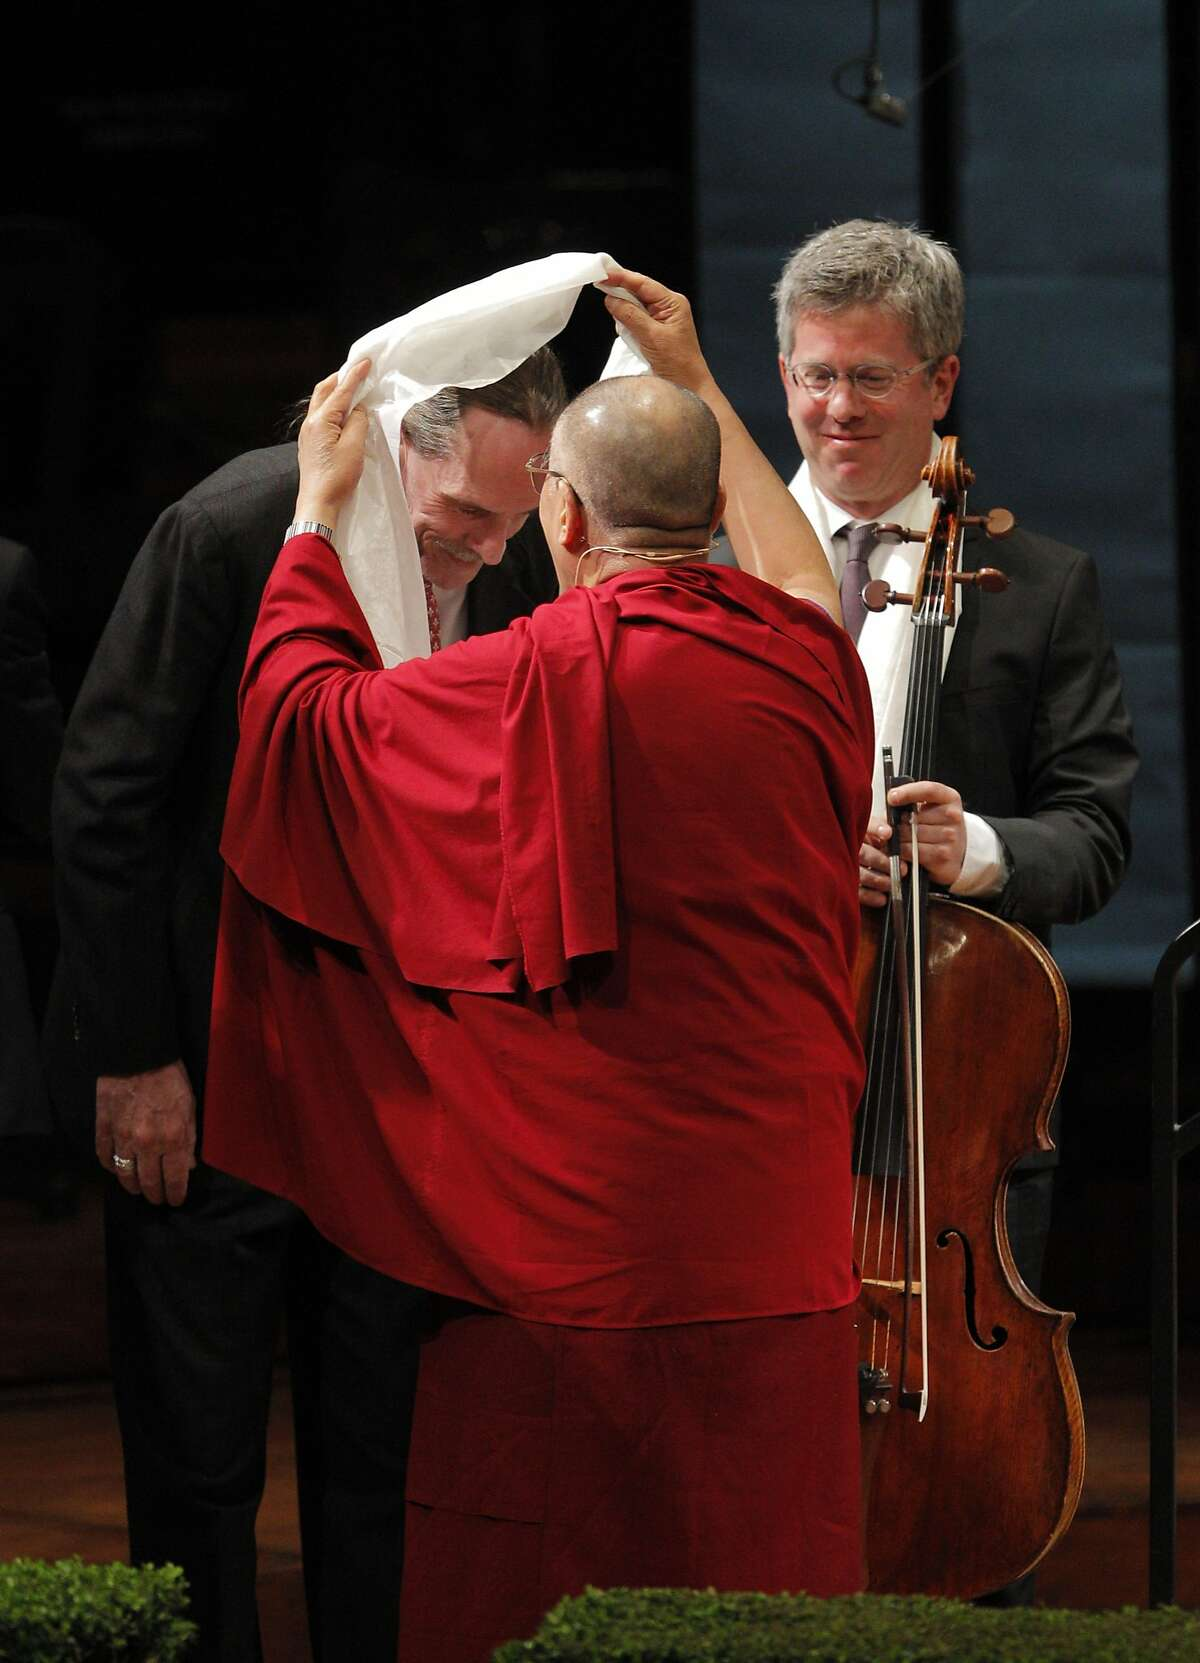 His Holiness the 14th Dalai Lama places a white scarf on pianist Robin Sutherland after His Holiness spoke at Davies Symphony Hall in San Francisco, Calif., on Saturday, February 22, 2014, as part of The American Himalayan Foundation and the Blum Center for Developing Economies at UC Berkeley talk titled �